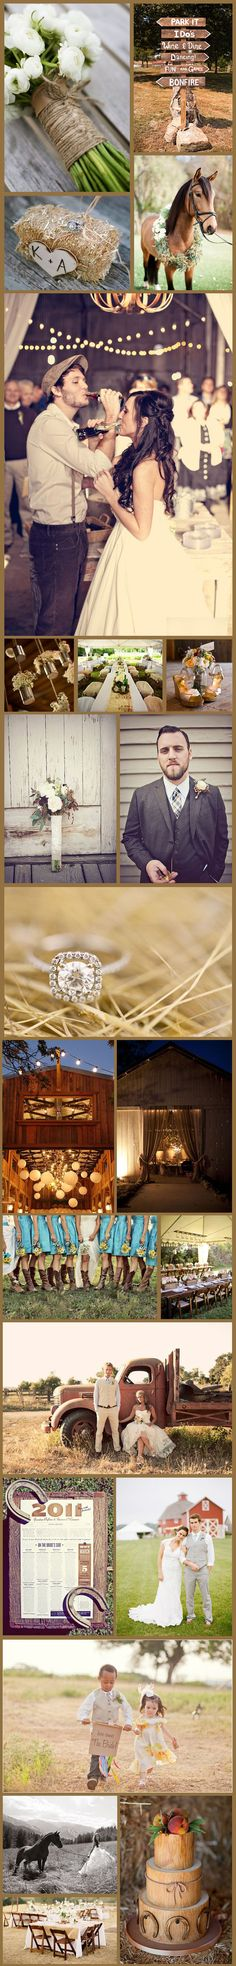 Since this won't be our ball theme, this will for sure be my wedding... Mechanic bull and all